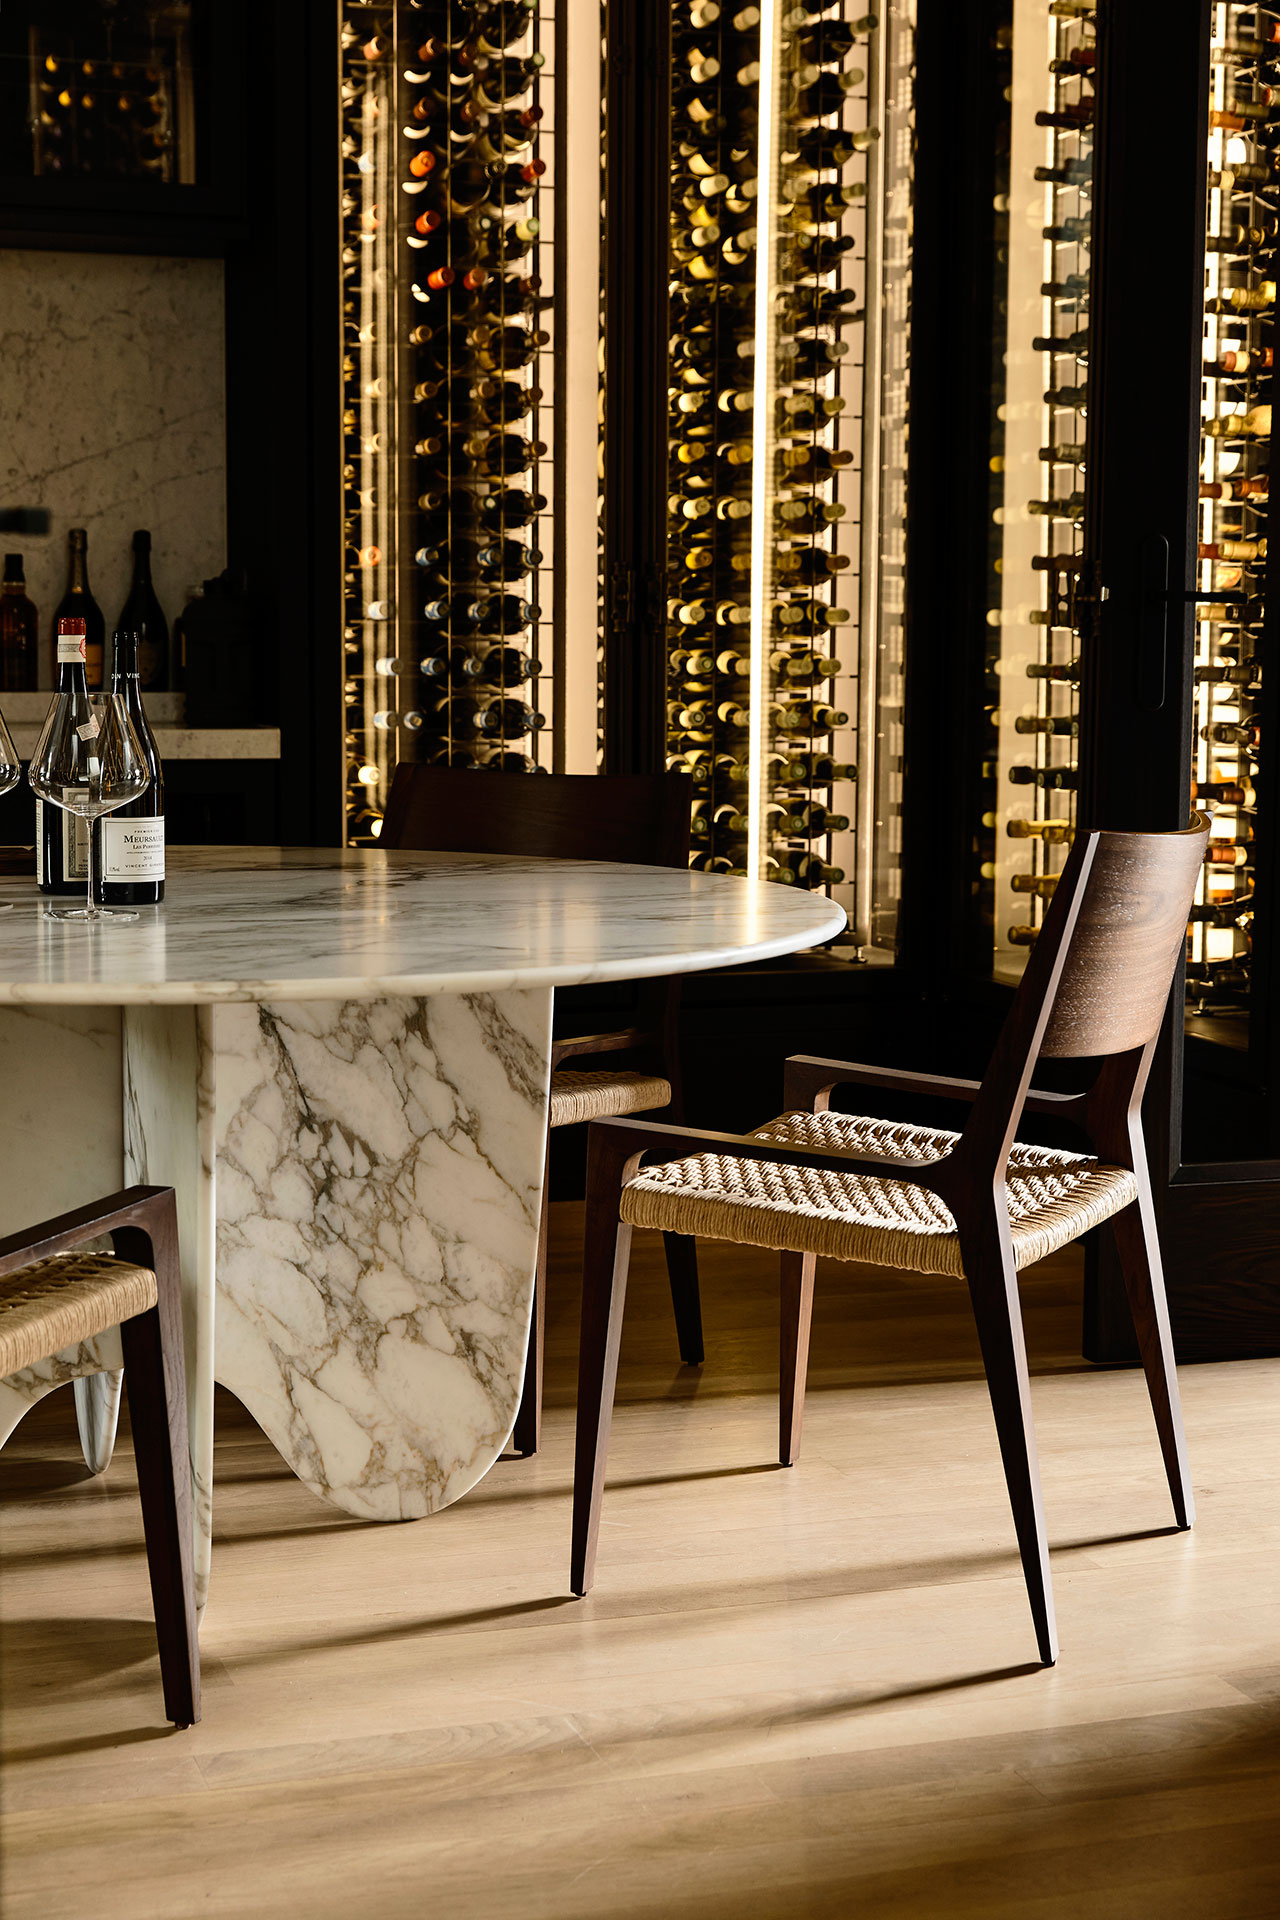 A small dining space features a marble table, woven chairs and a large lit up glass wine cooler